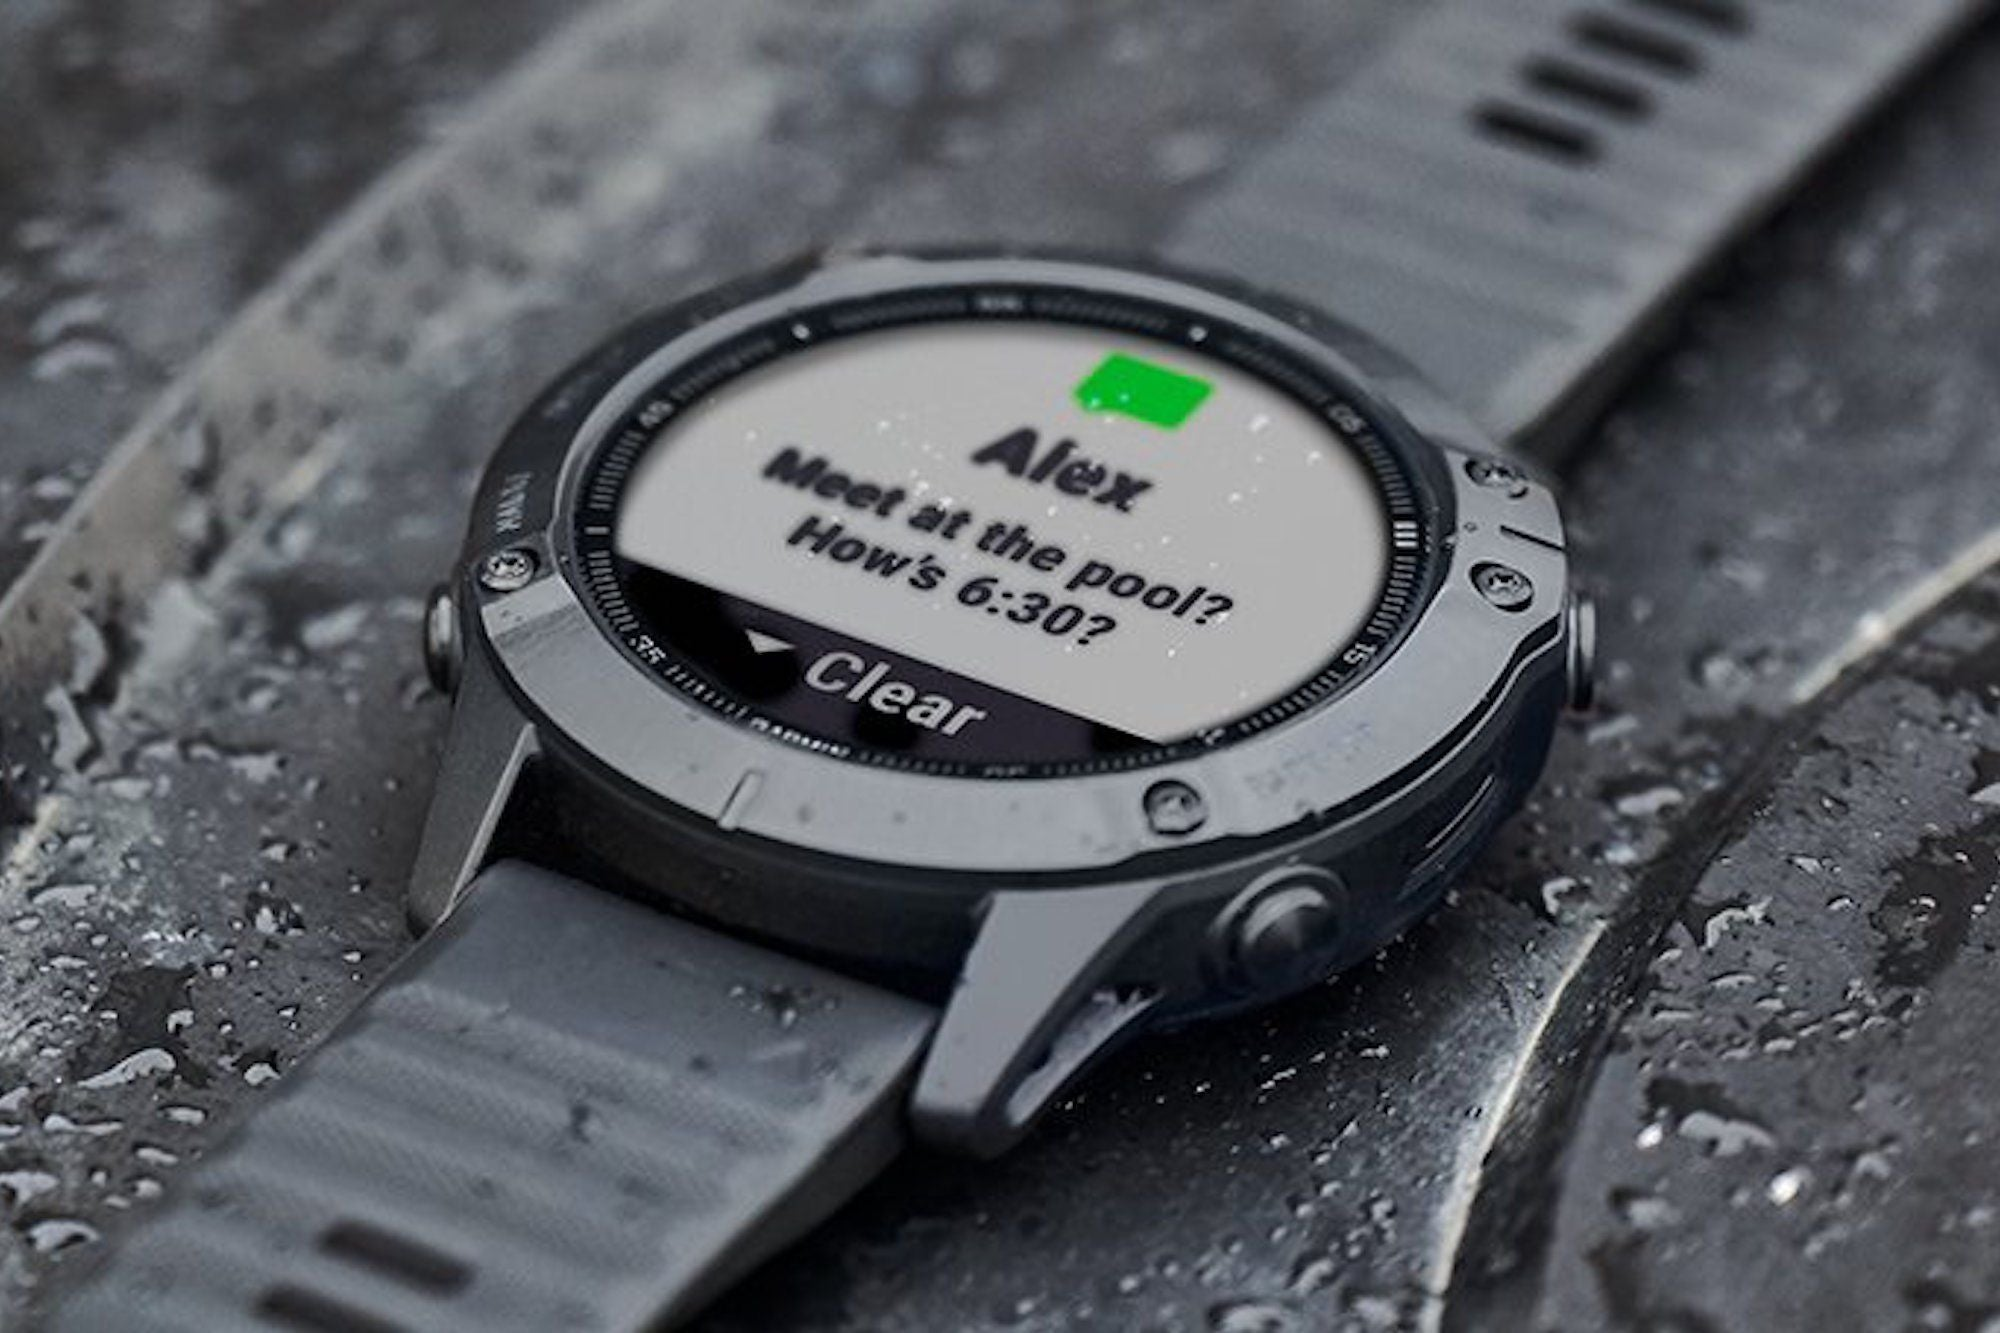 The Best Garmin Fitness Trackers For Keeping Up Your Training Wherever Work Takes You